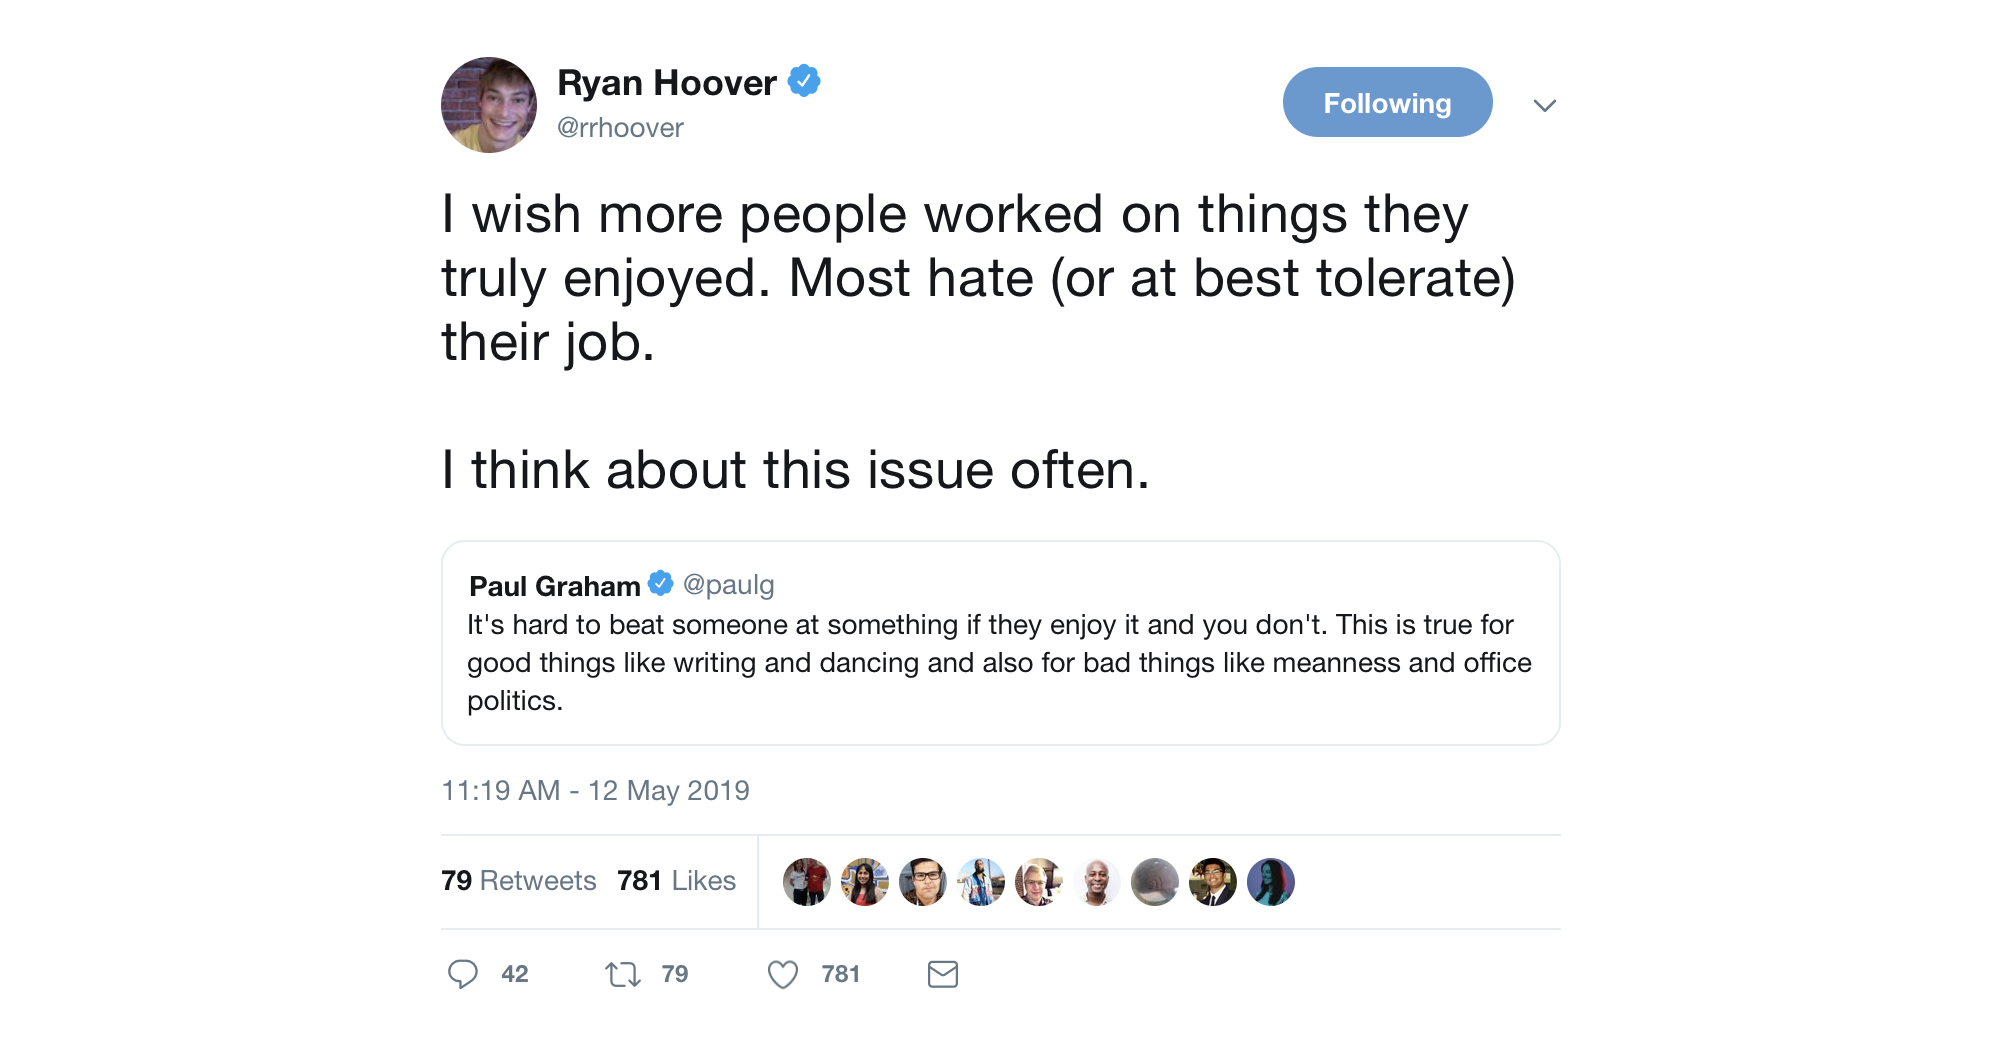 A tweet from Ryan Hoover